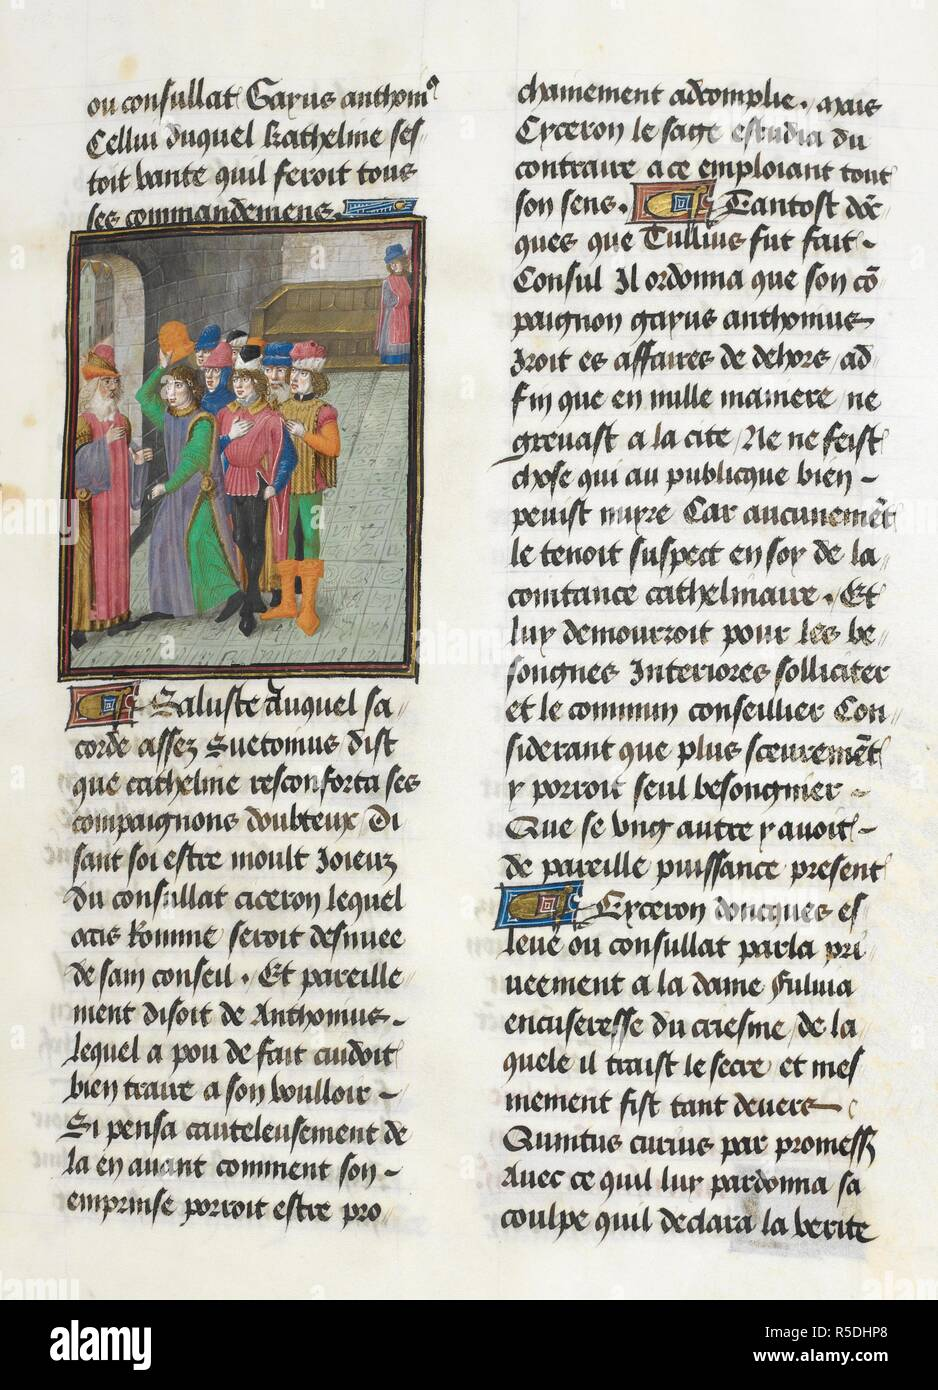 Catiline and conspiritors (Book 1, 21). Caesar, translated by Jan Du Quesne (or Jean Duchesne), Bellum Gallicum ( Les commentaires de Cesar ). 1473-1476. Source: Royal 16 G.VIII, f.47. Author: JULIUS CAESAR. Du Quesne, Jehan. Circle of the Master of the London Wavrin. - Stock Image